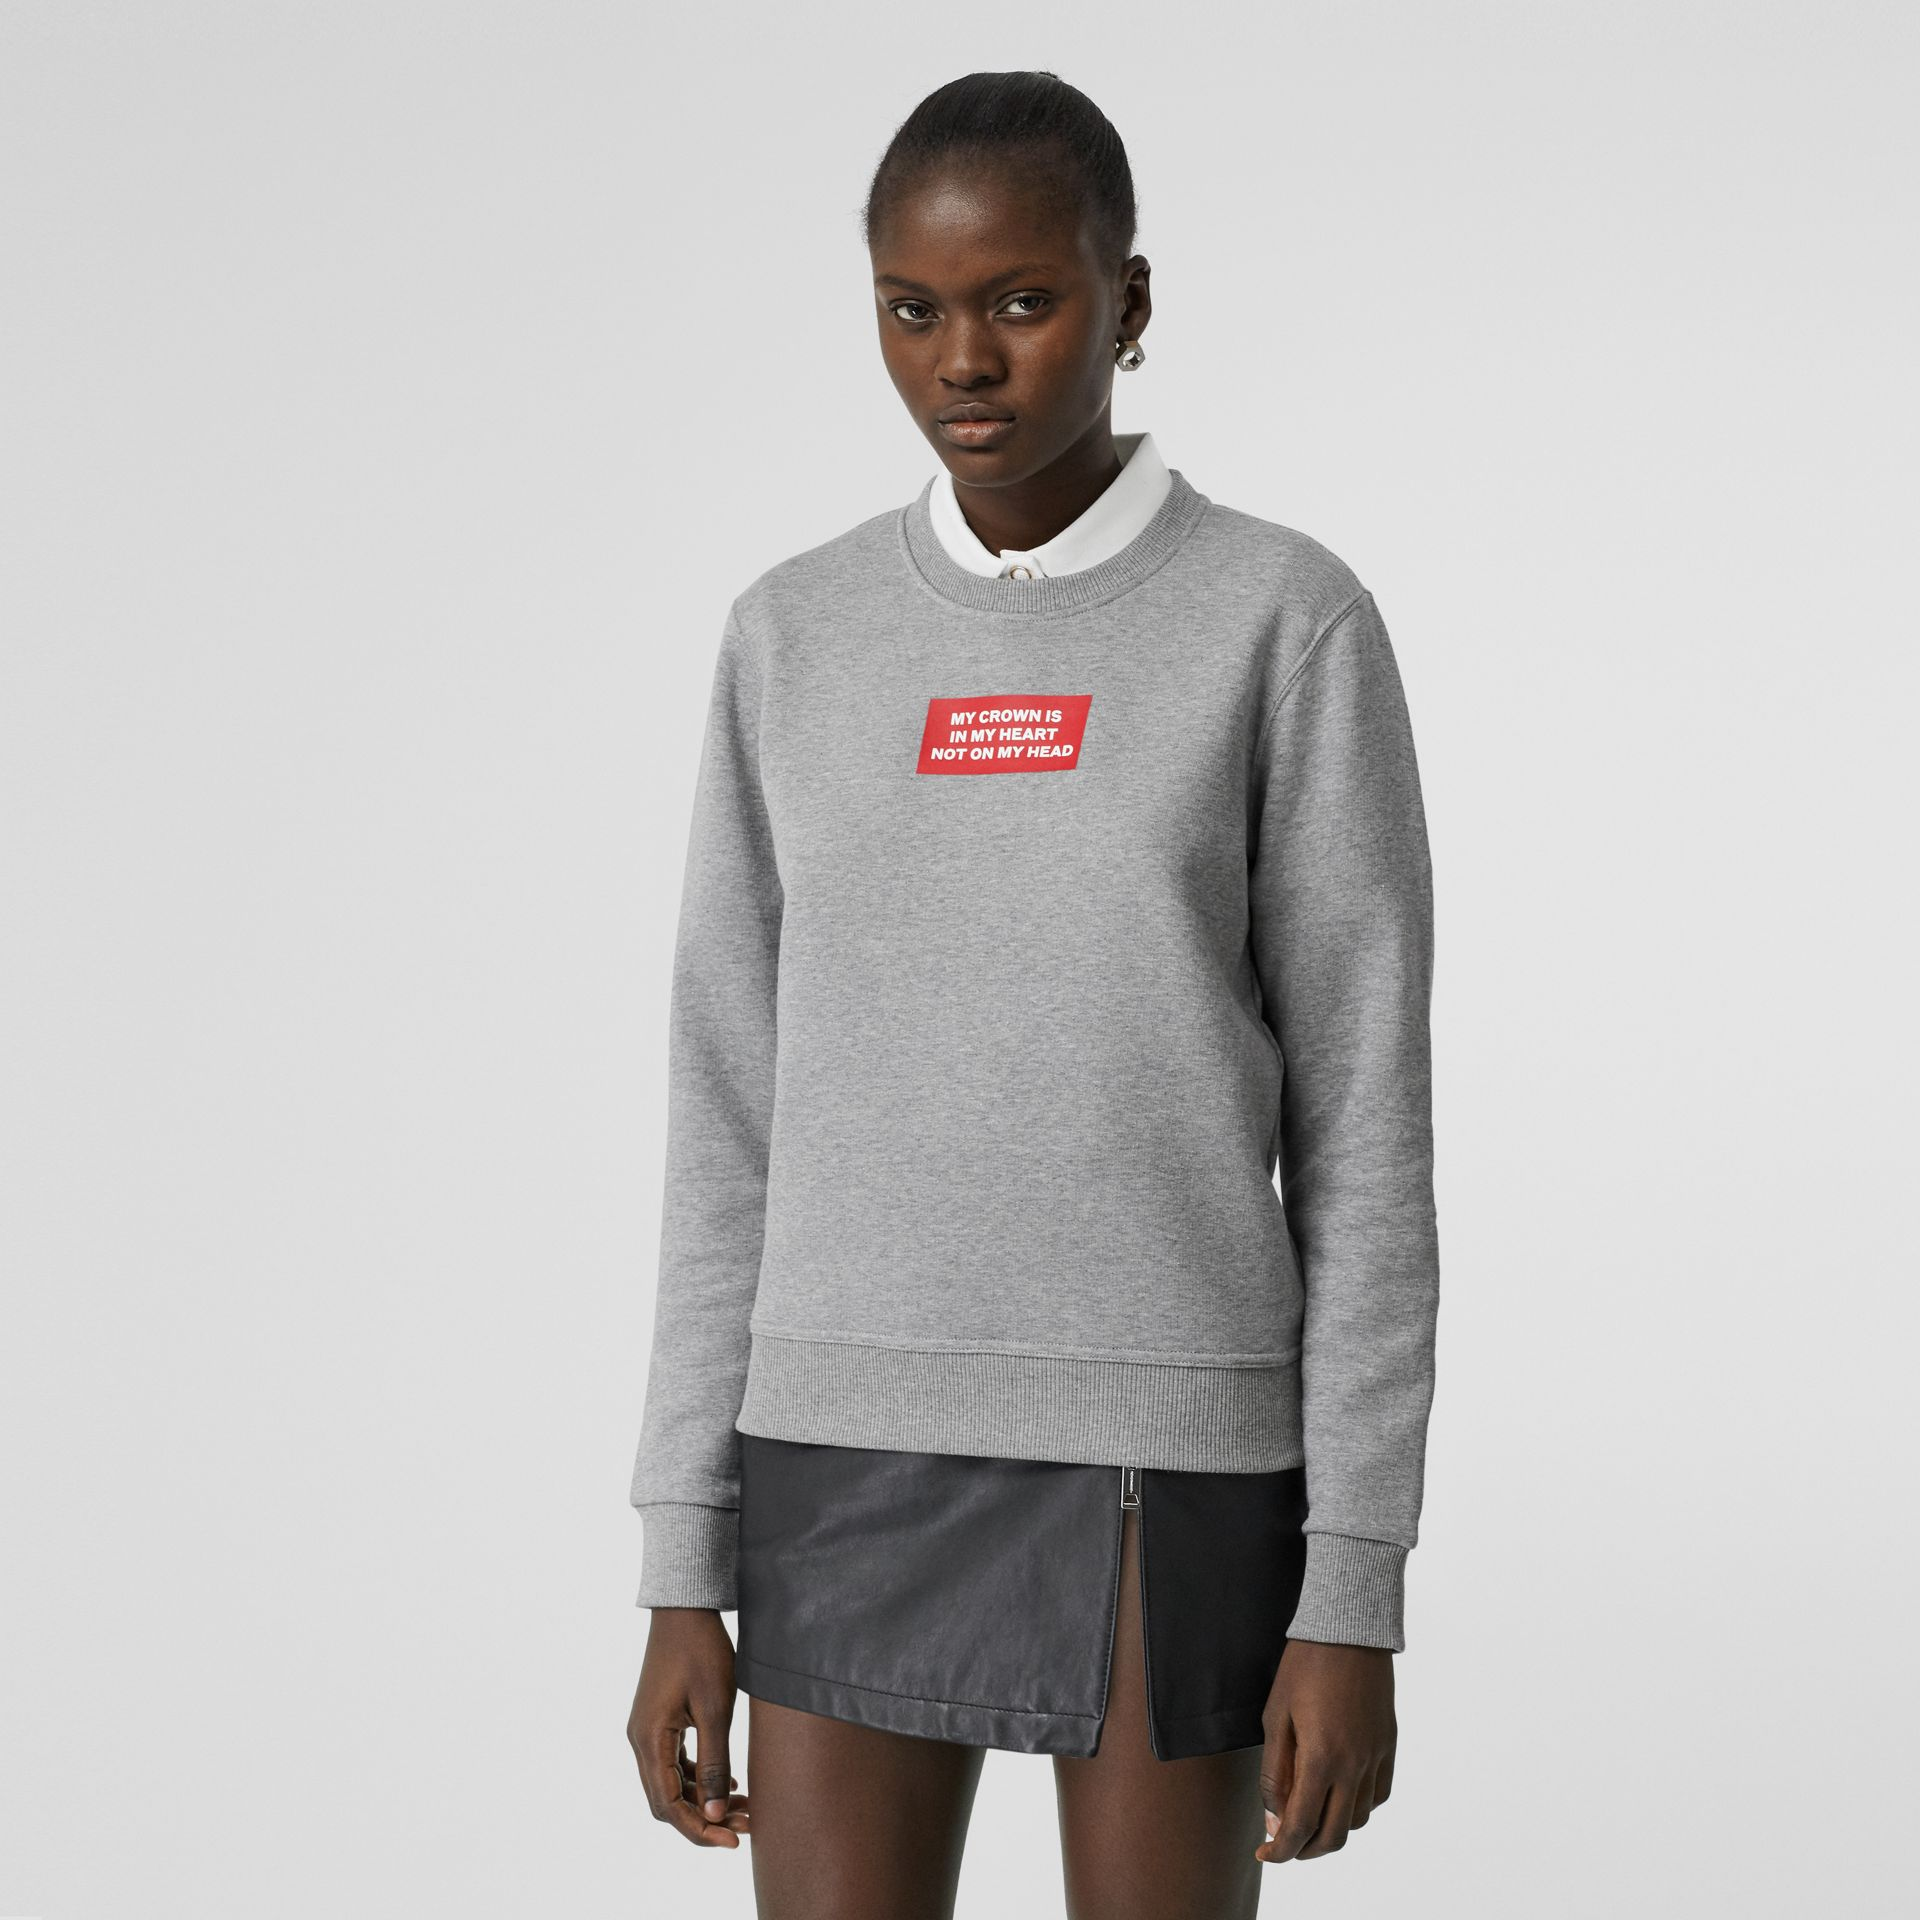 Quote Print Cotton Sweatshirt in Pale Grey Melange - Women | Burberry - gallery image 4